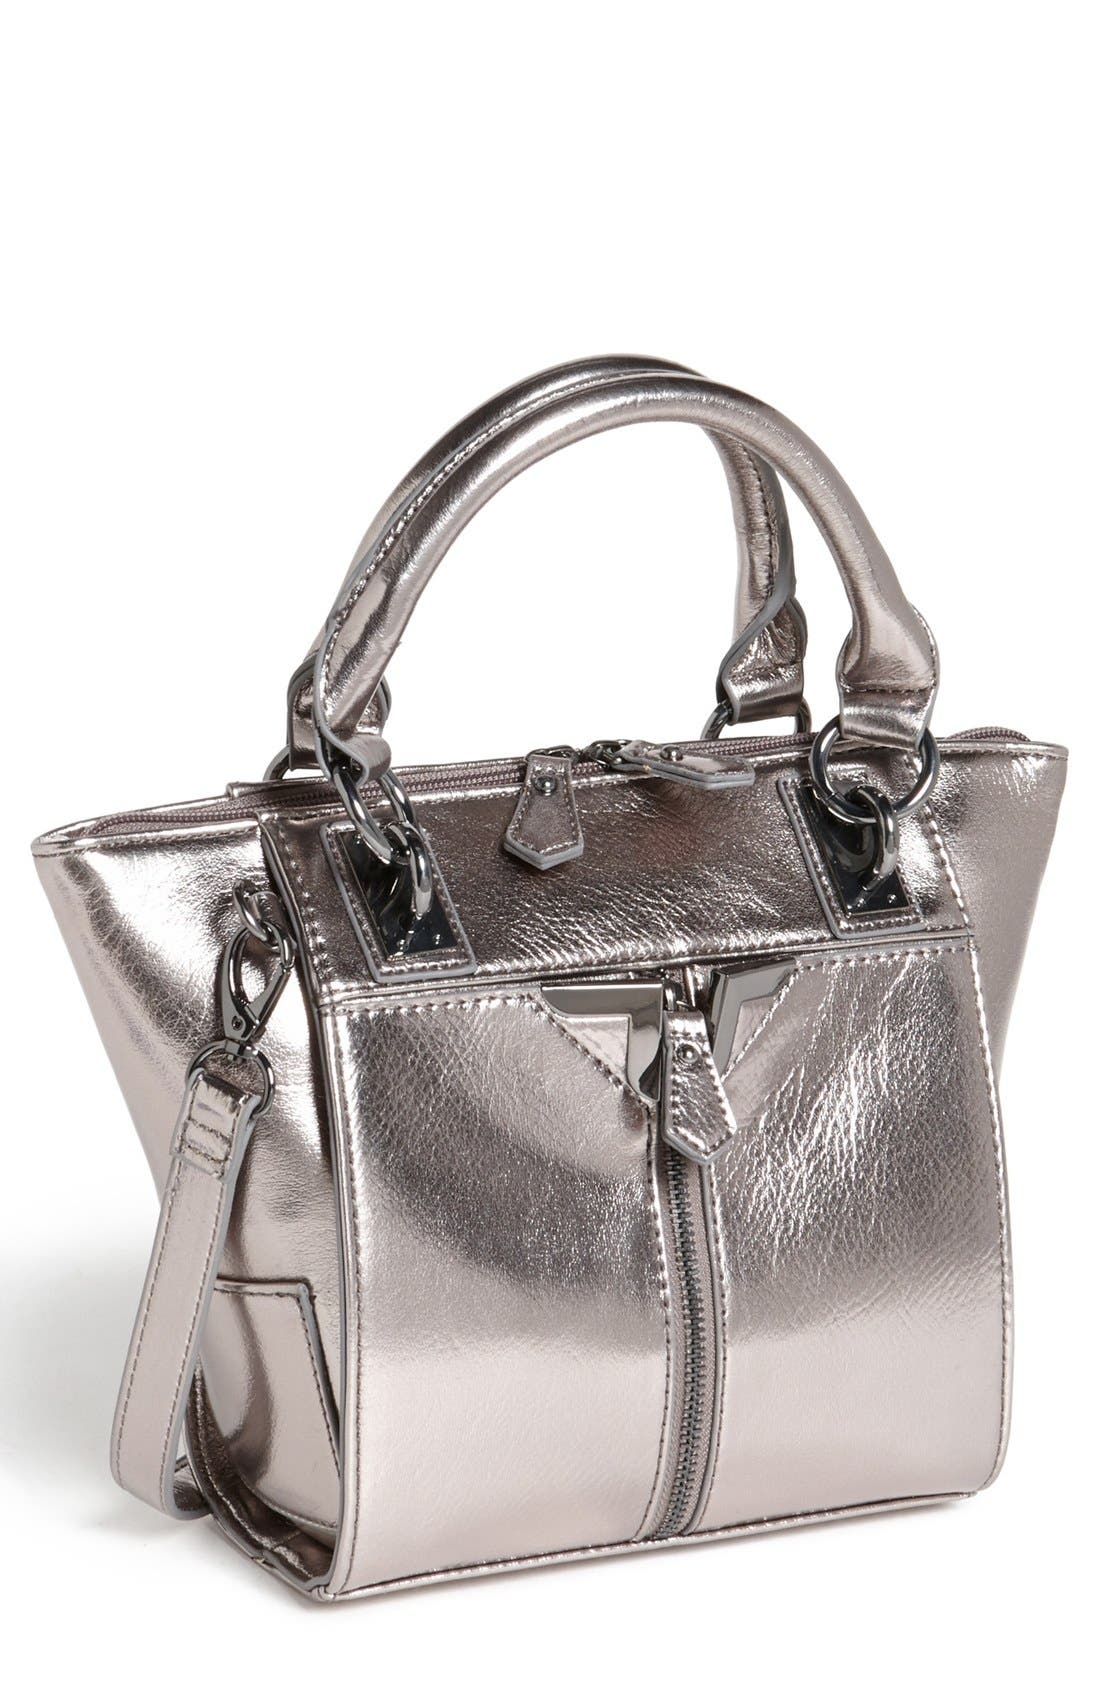 Alternate Image 1 Selected - Danielle Nicole 'Alexa - Mini' Crossbody Bag